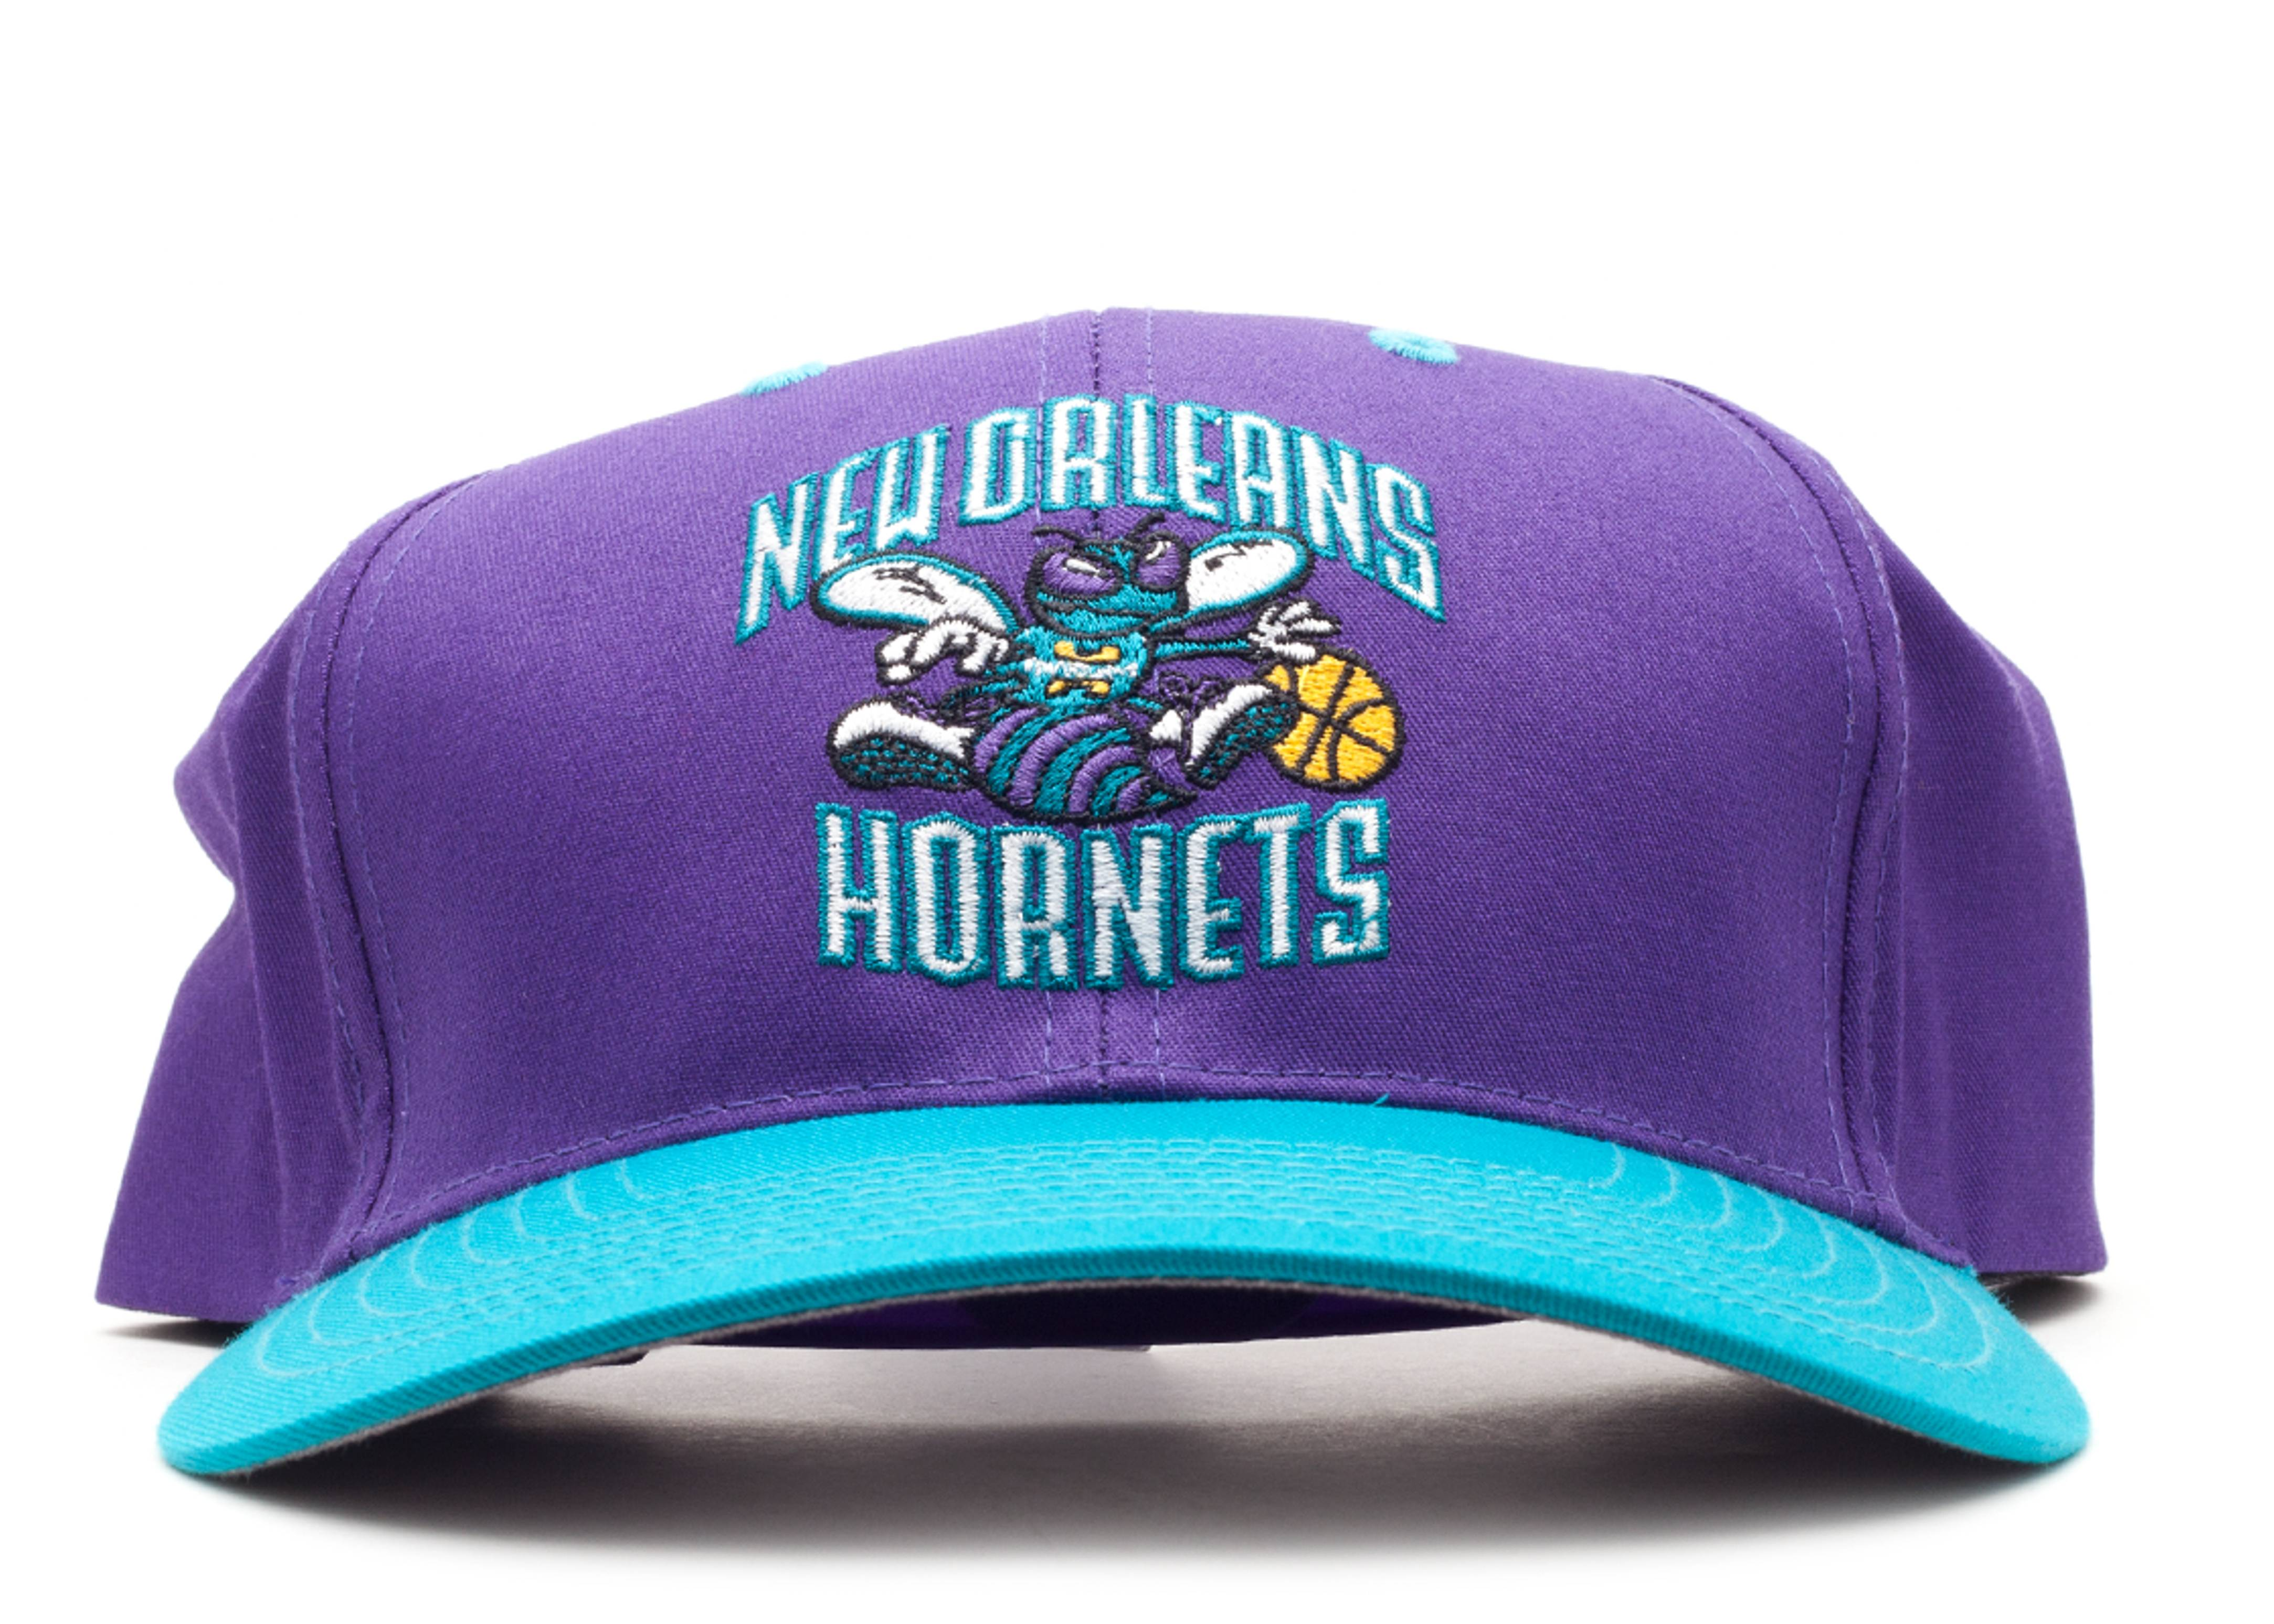 new orleans hornets snap-back